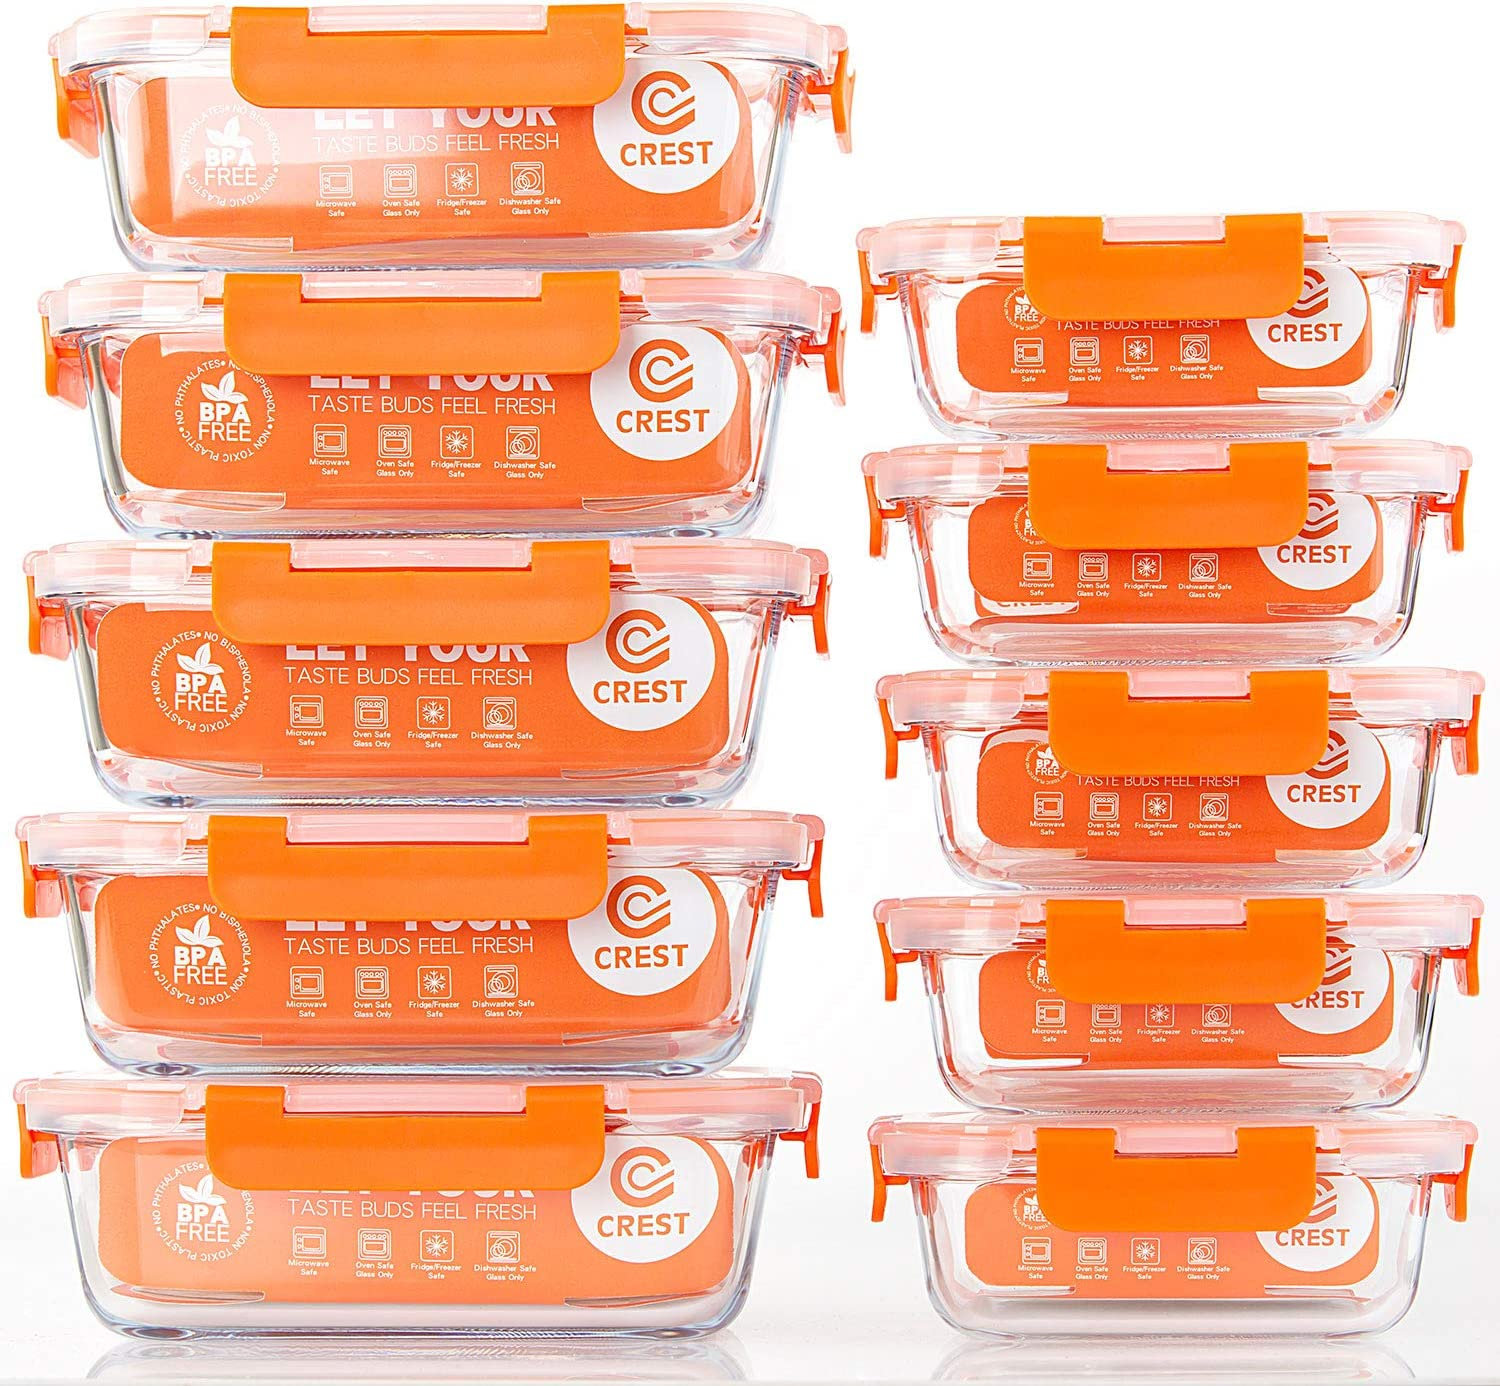 [10-Pack] Glass Food Storage Containers - Food Prep Containers with BPA Free Lids - Microwave, Oven, Freezer and Dishwasher Safe